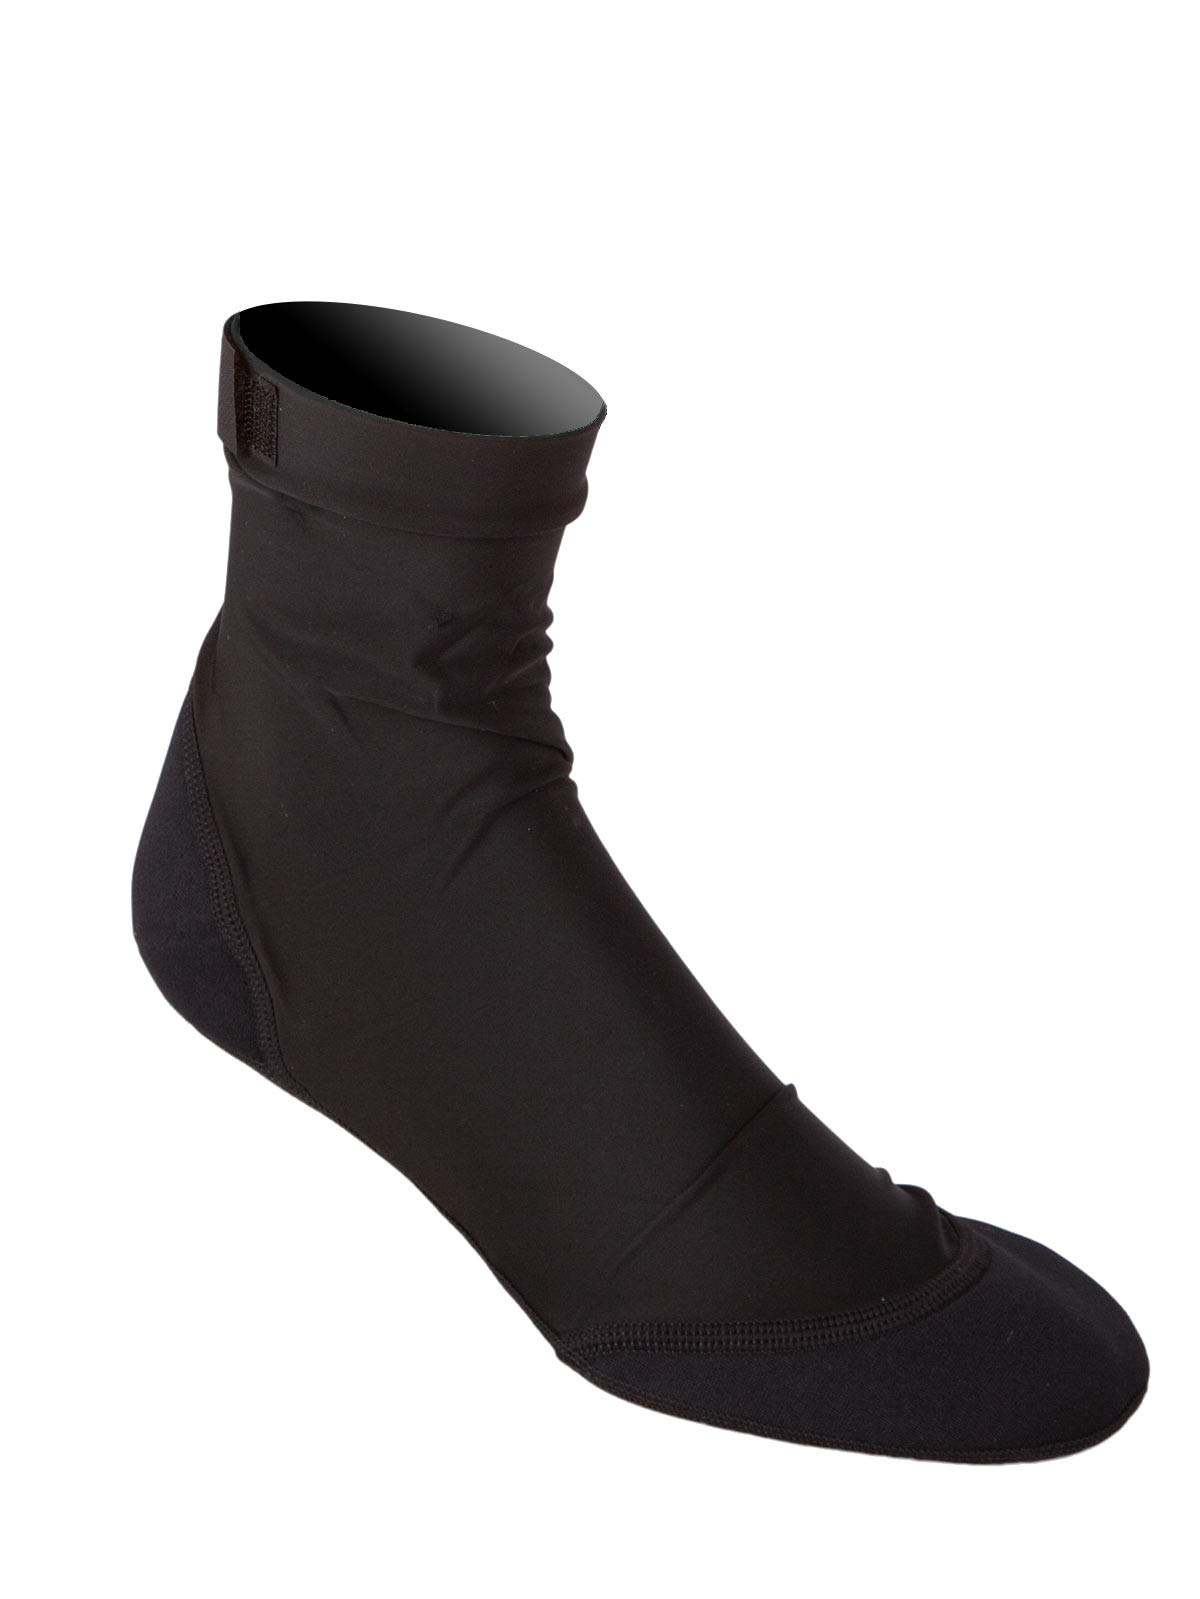 Sand Socks Vincere for Soccer, Volleyball, Snorkeling XXS All Black (no Logo)